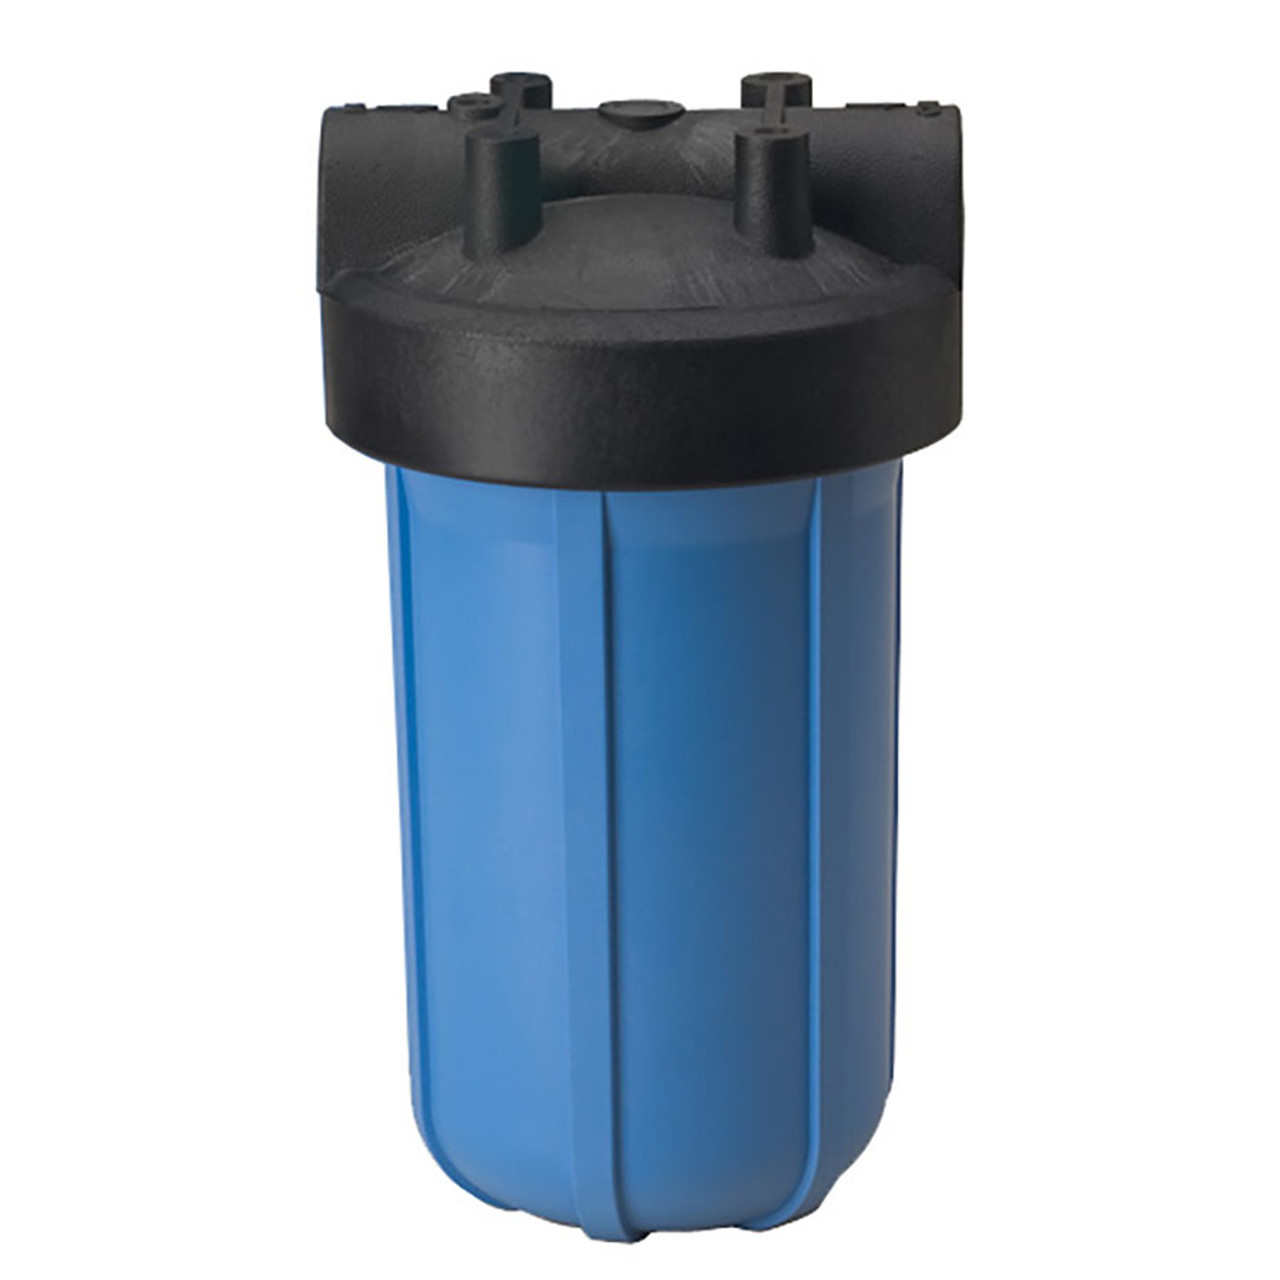 """4.5"""" O.D. Filter Housing 100F and 90 PSI Max"""